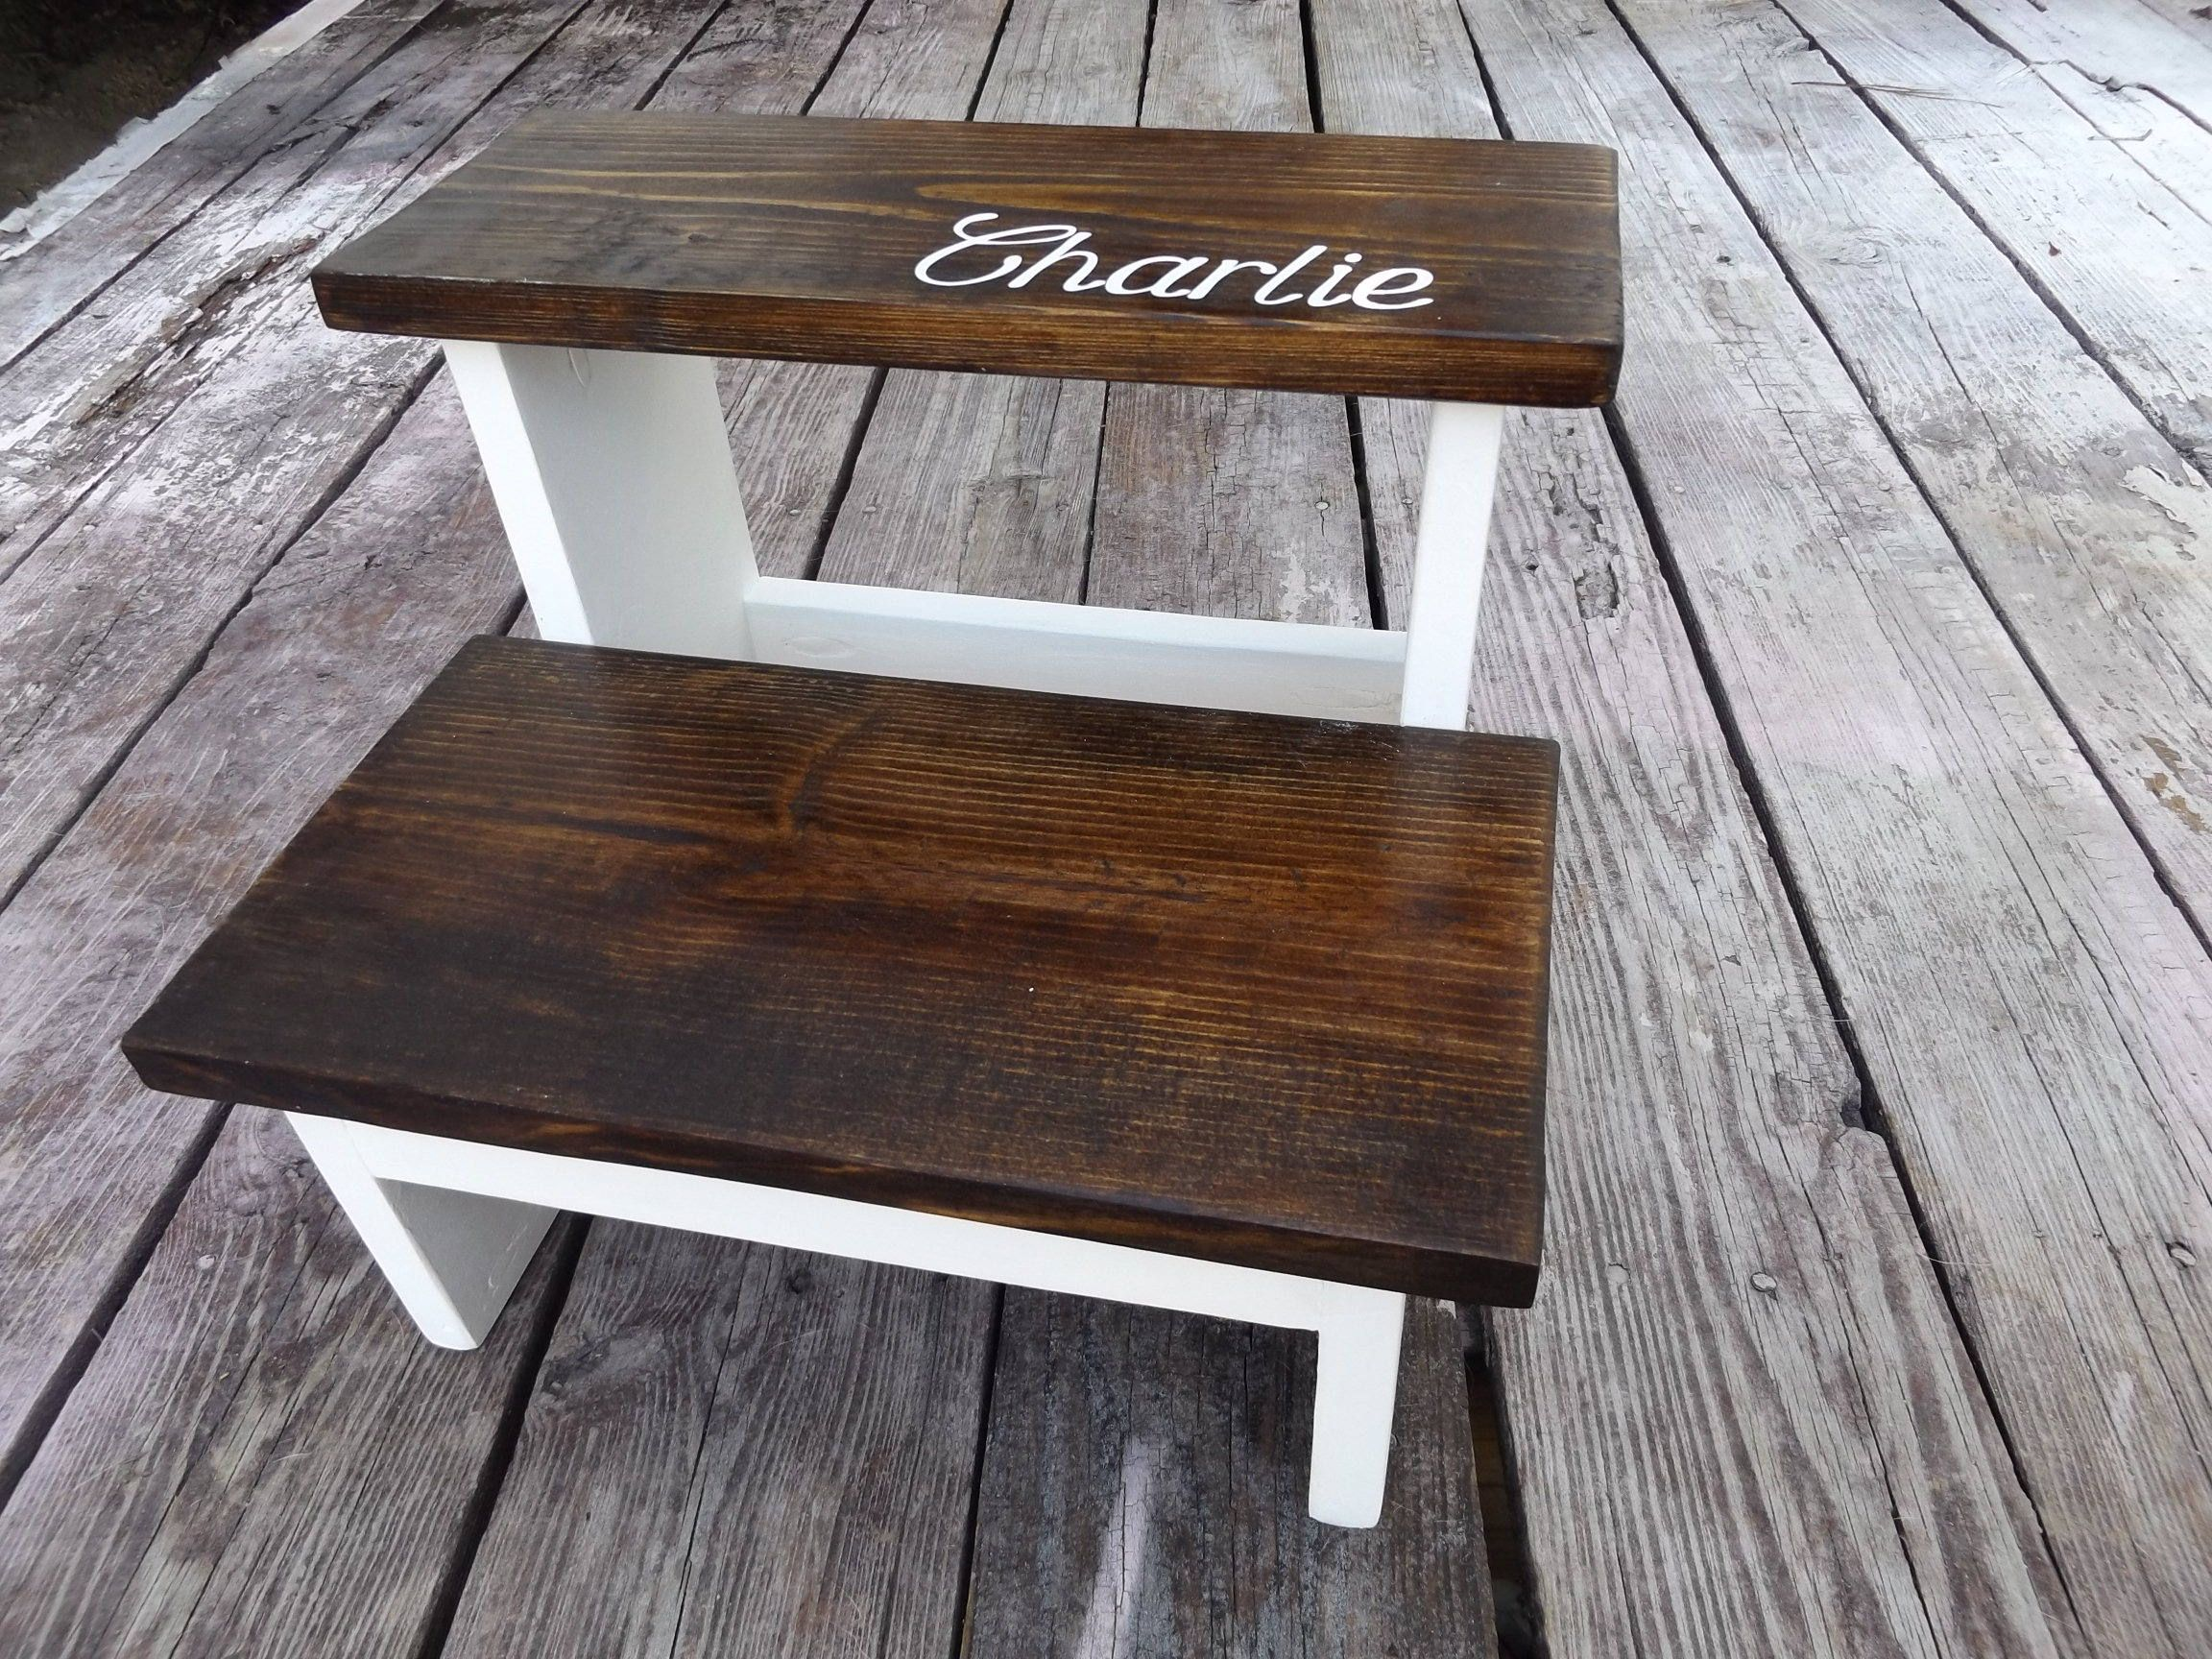 2 Step Wooden Stool Kids Toddler Walnut Stain With White Gray Pink Aqua Mint Bottom Paint